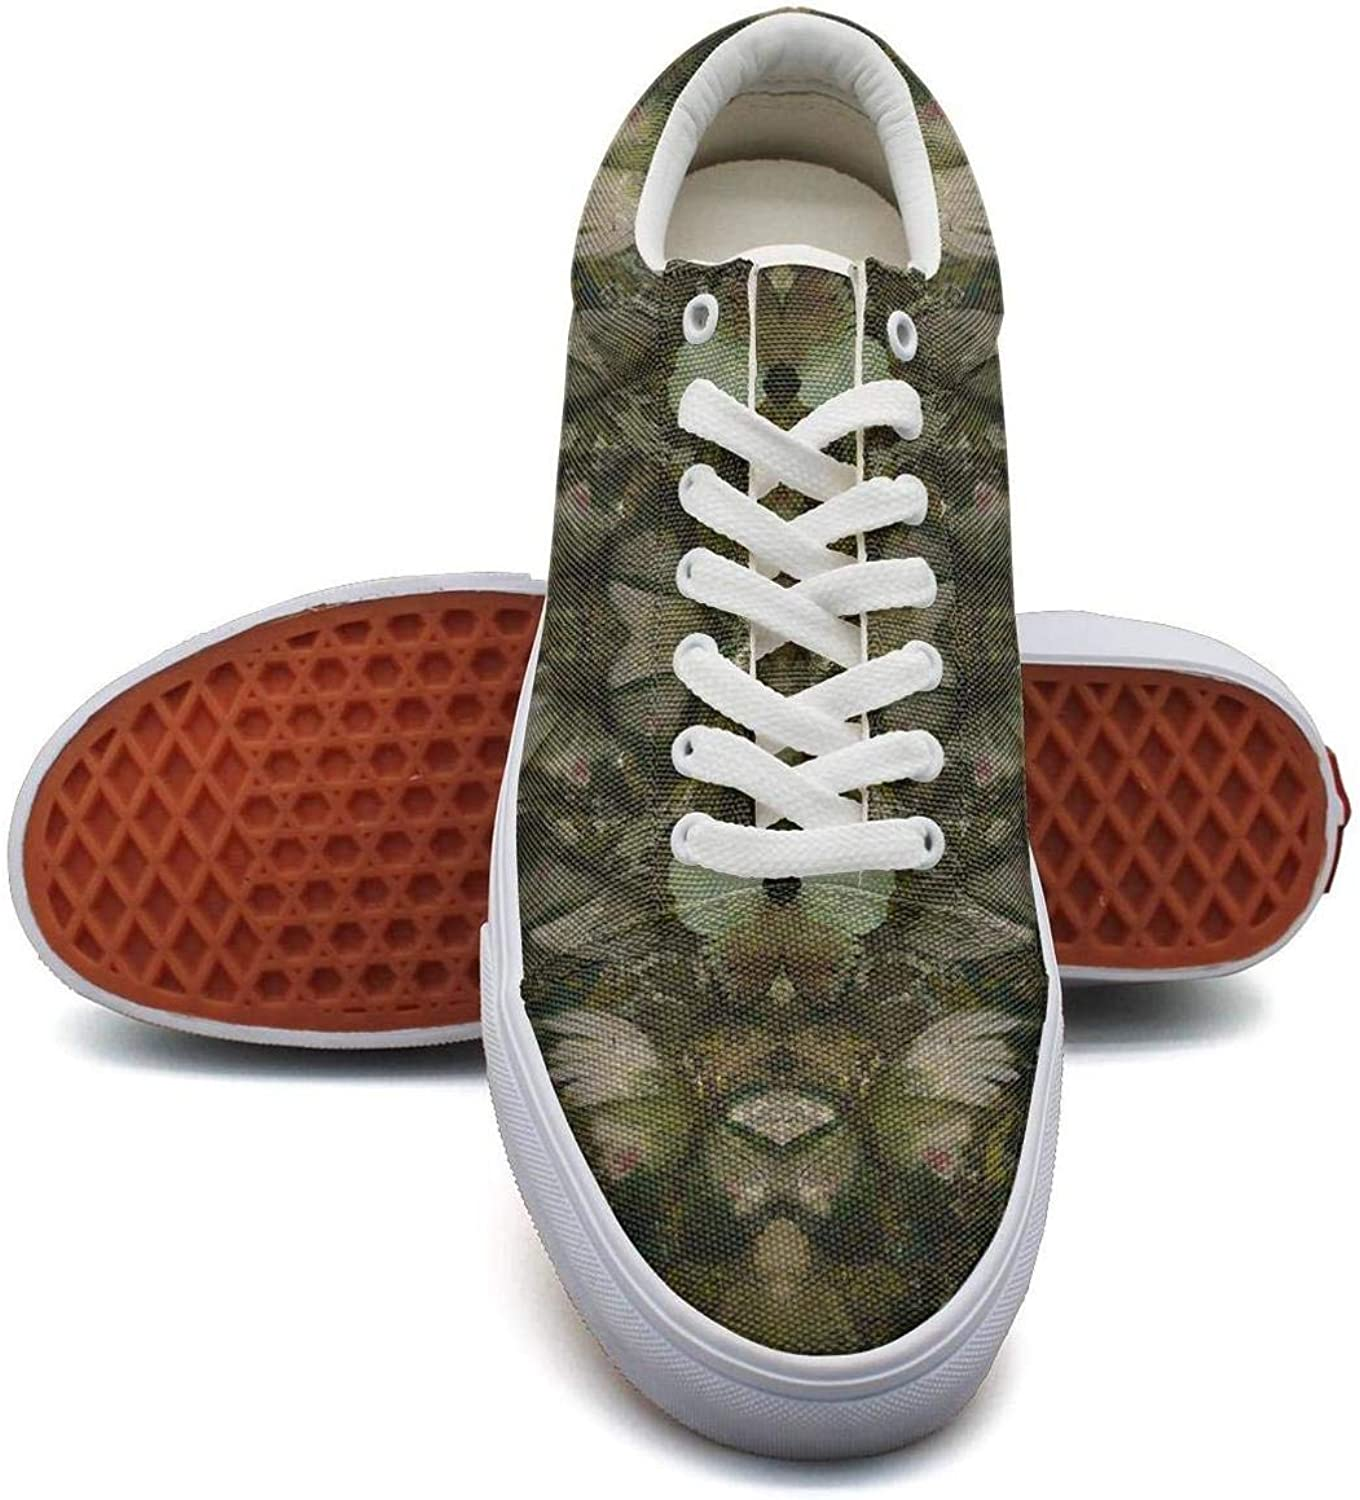 Wuixkas Camouflage Butterfly Army Womens Canvas Upper Sneakers Lace Up Popular Fashion Loafer Canvas shoes